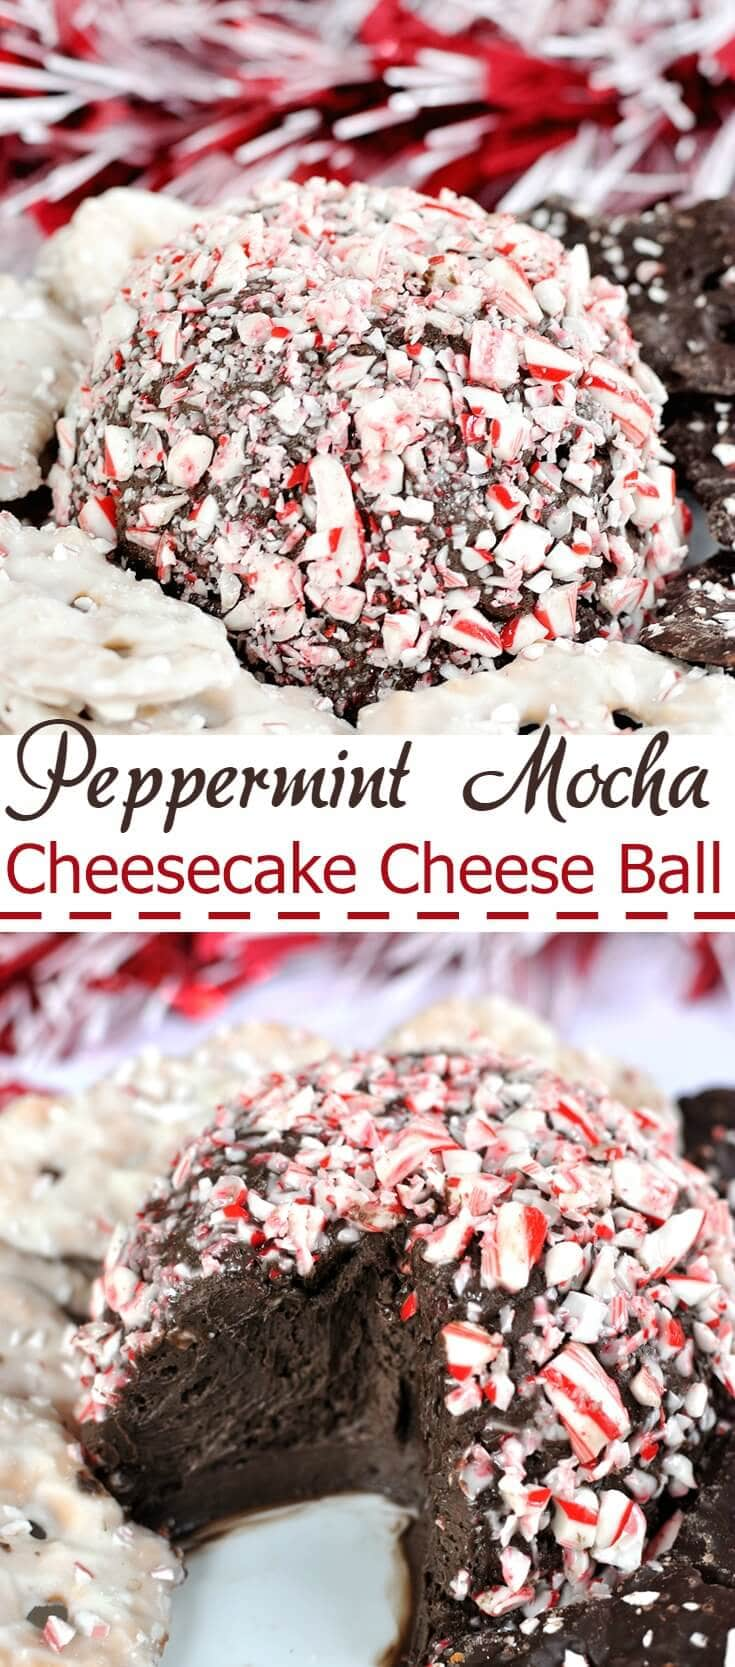 peppermint mocha cheesecake cheese ball recipe